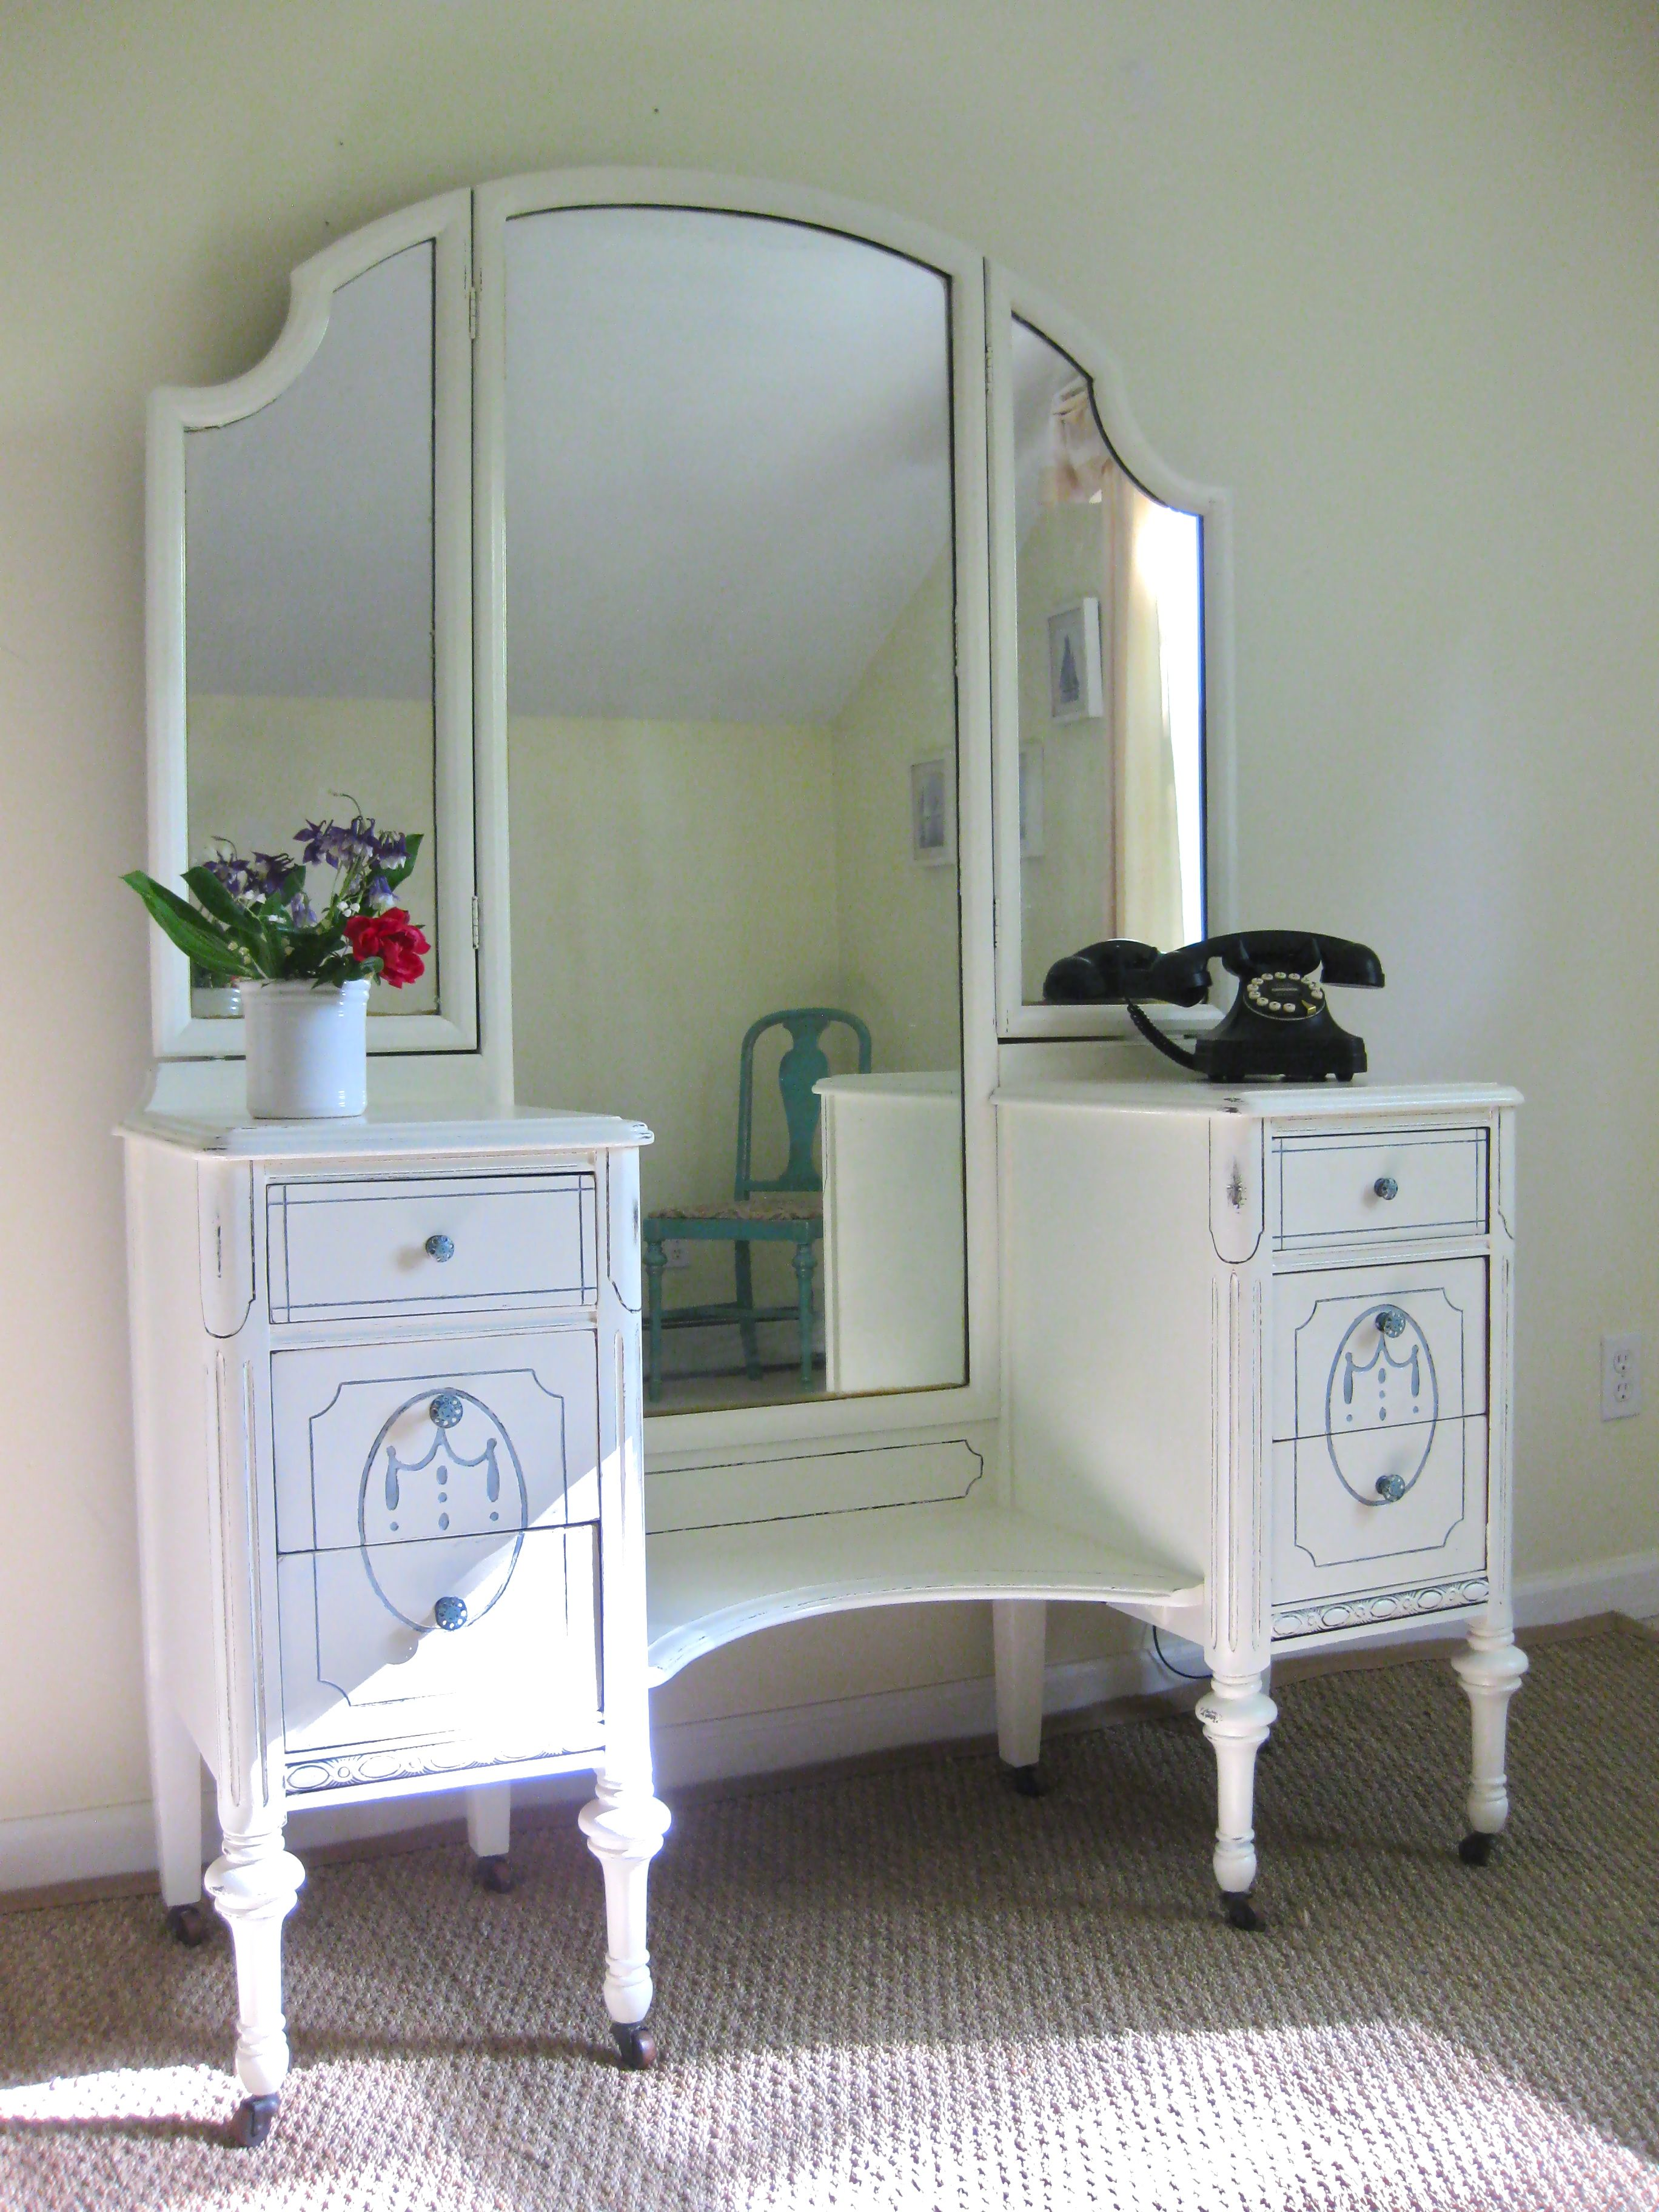 Antique vanité / dressing table. Painted antique white and